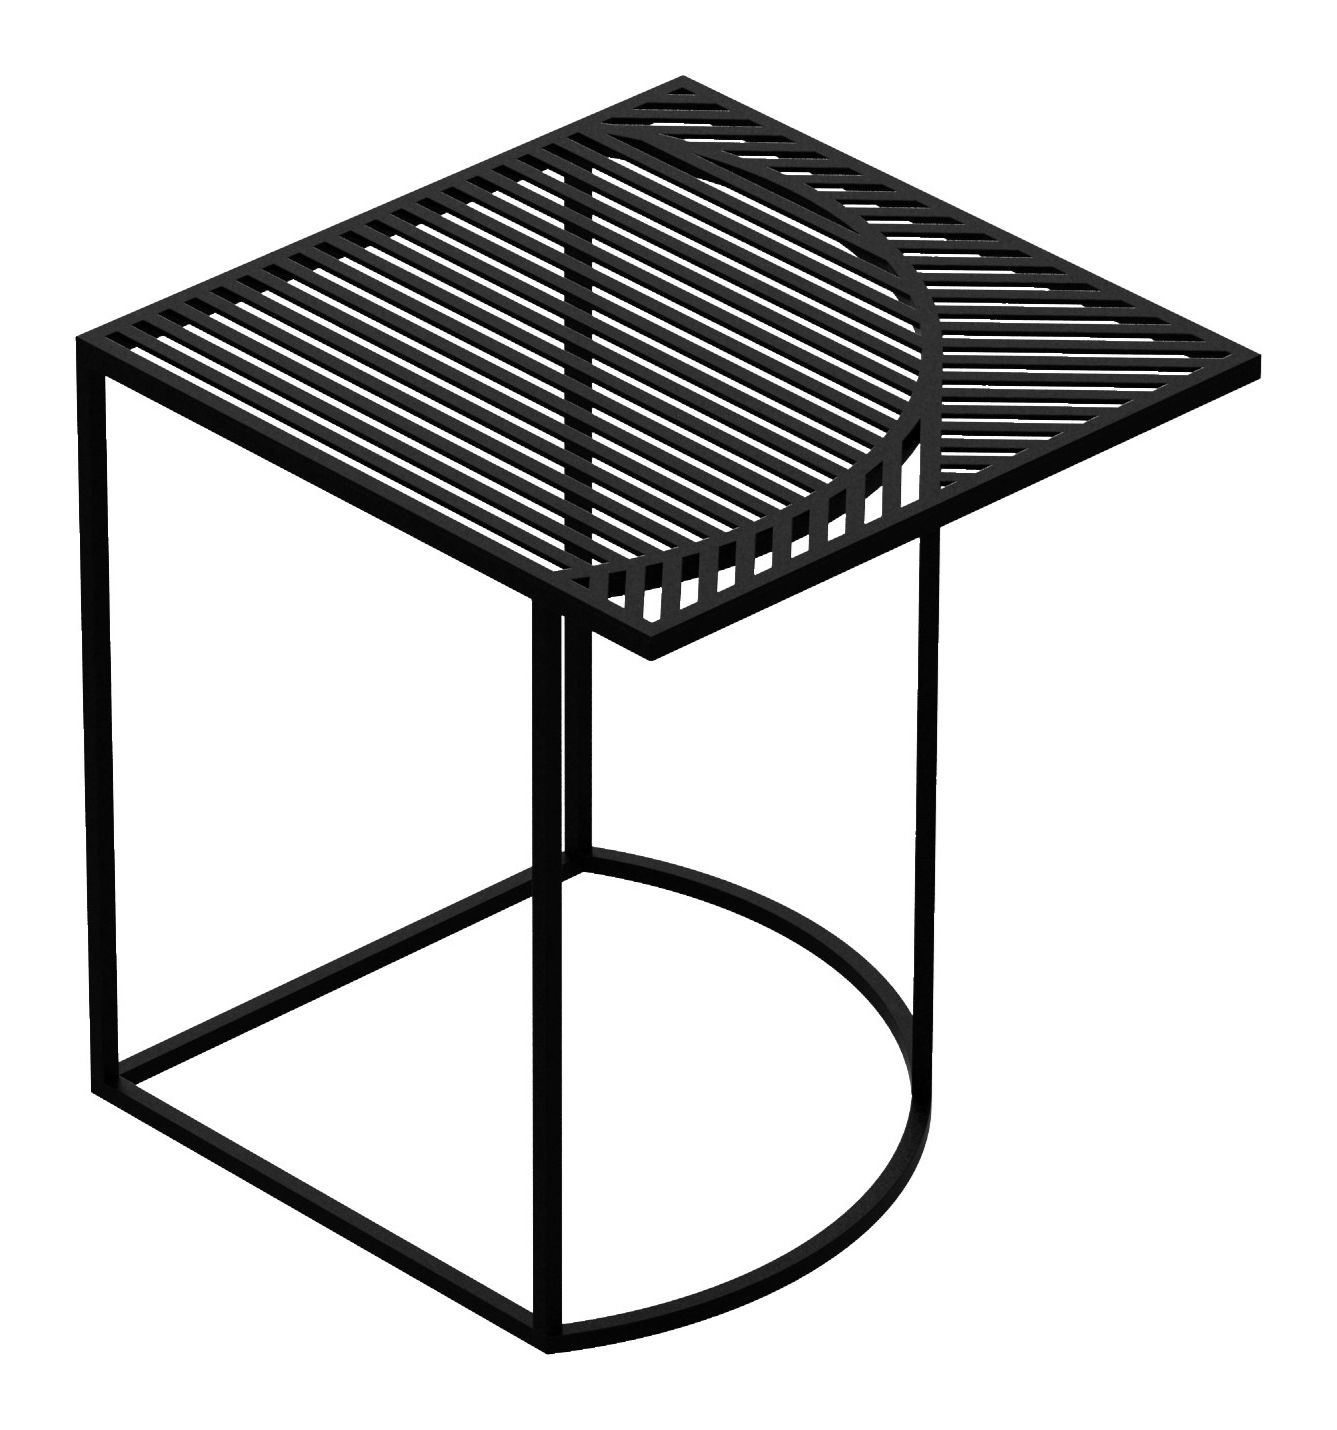 Furniture - Coffee Tables - Iso-B Coffee table by Petite Friture - Black - Powder coated steel